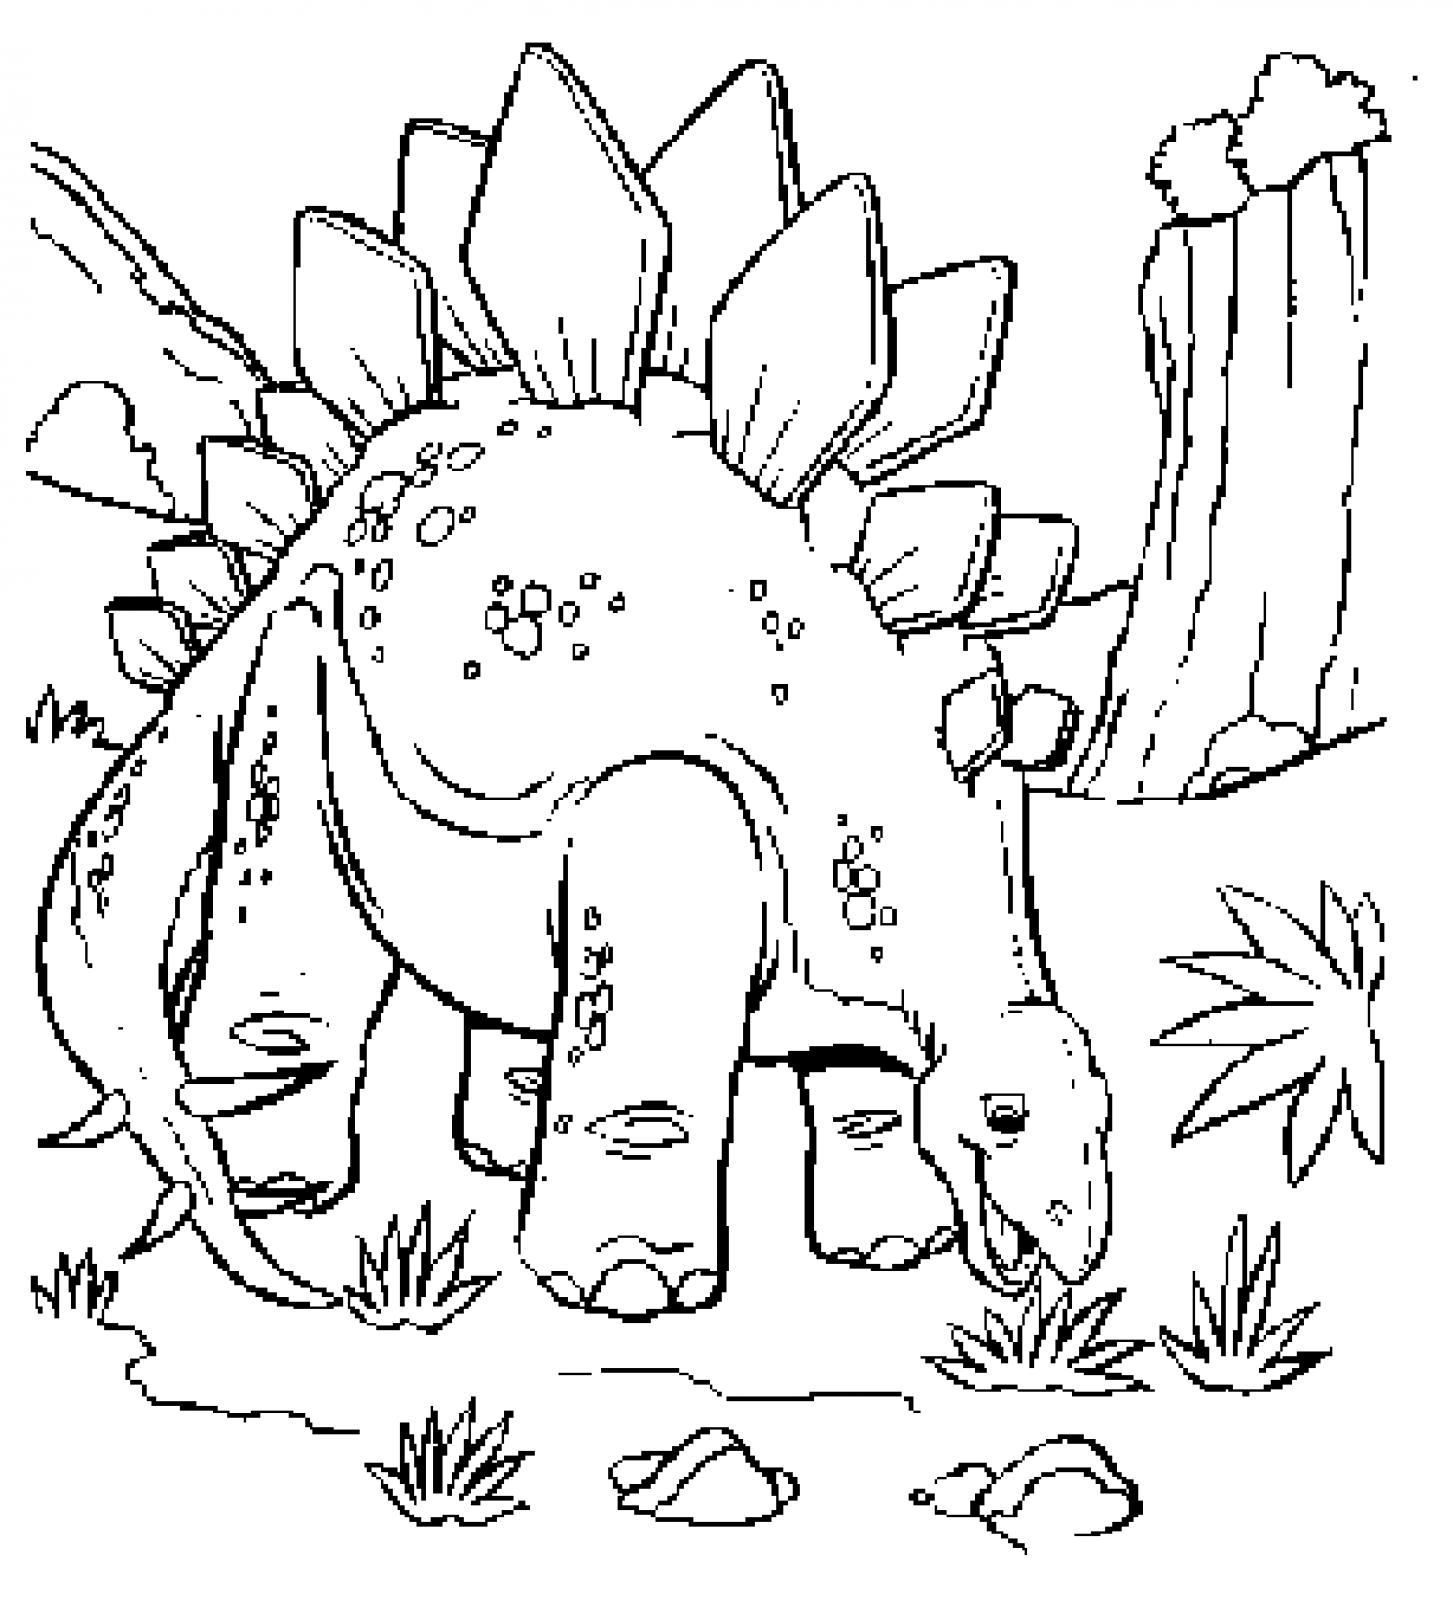 Free Colouring Pages Dinosaurs Dinosaur Printable Coloring Pages Dinosaur Coloring Pages Dinosaur Coloring Sheets Dinosaur Coloring